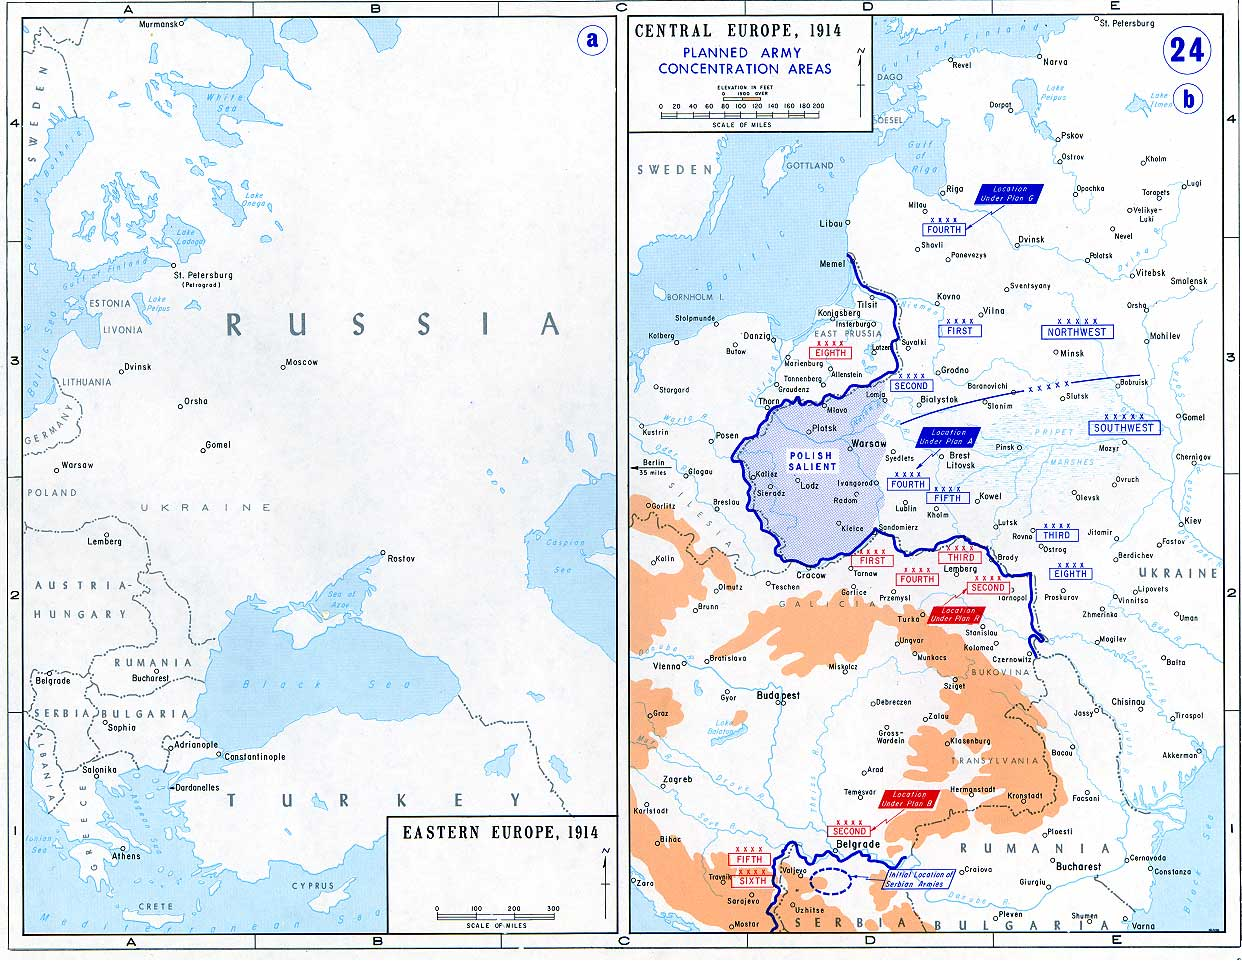 Maps of the great war 24 eastern europe 1914 and planned army concentration areas in central europe 1914 gumiabroncs Choice Image